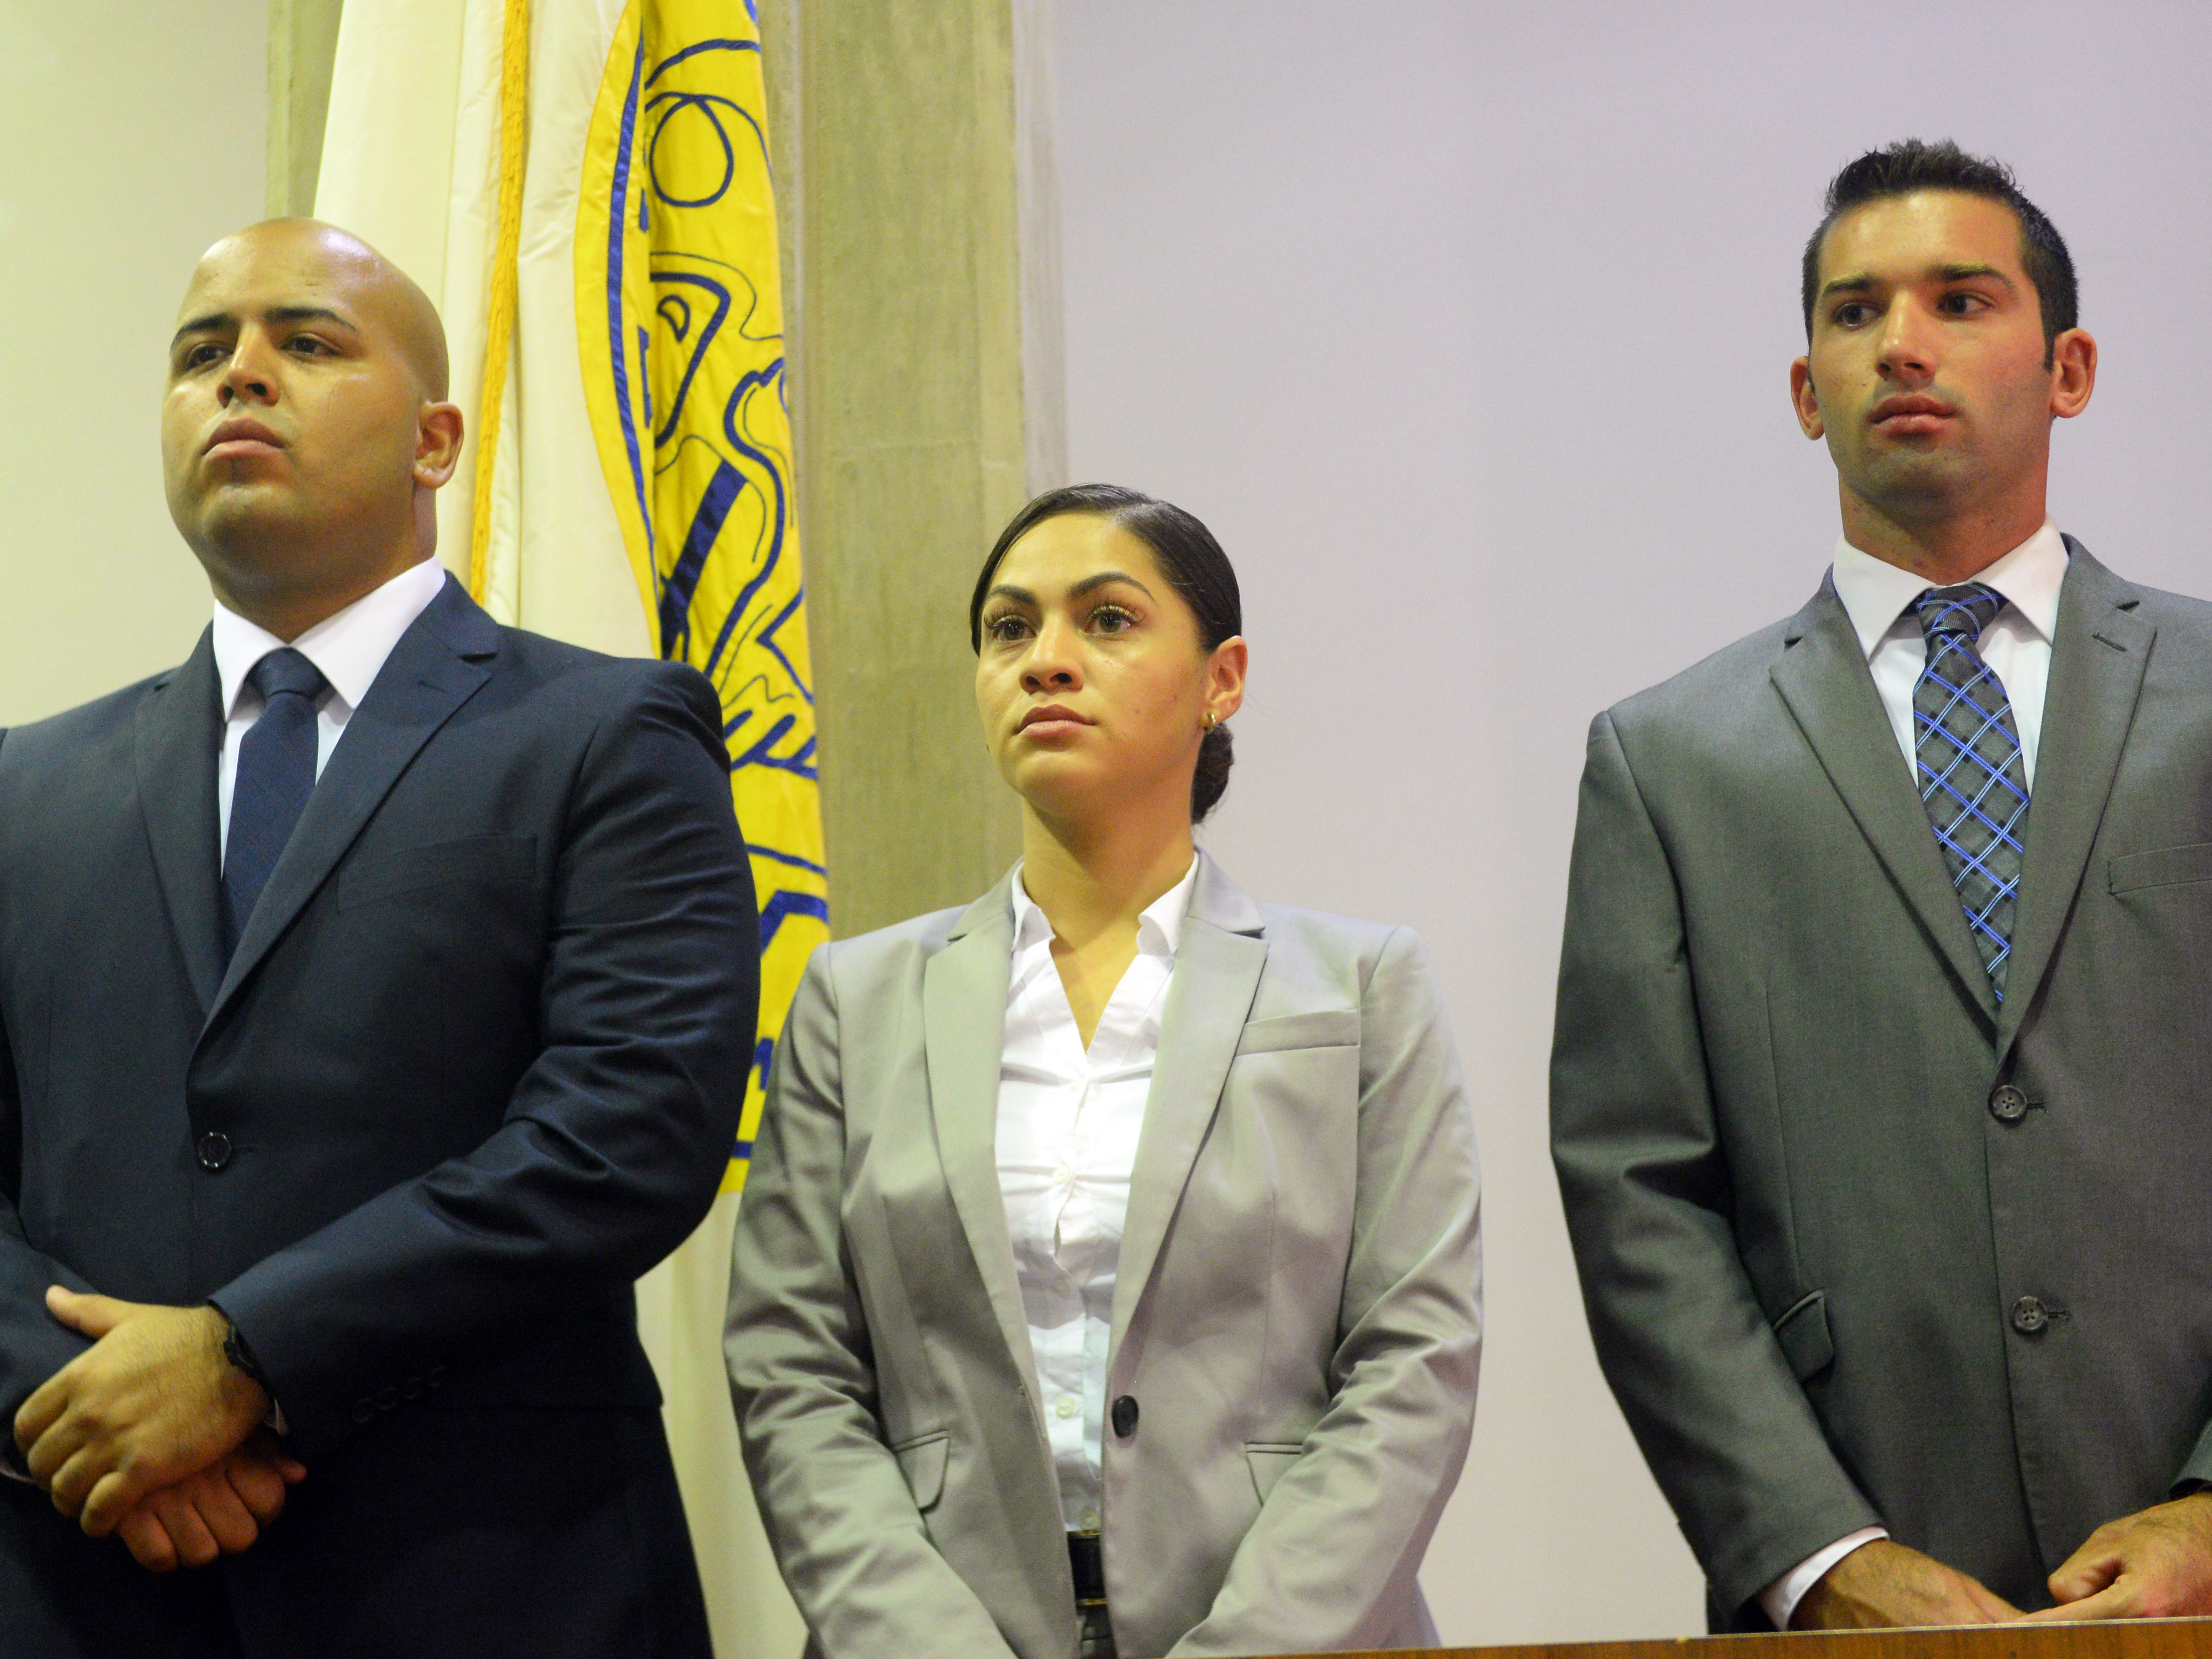 Vineland Police welcome three new recruits, pictured from left to right, Kyle J. Arbona, Kaylene Cosme and Daniel Miller Jr., on Thursday, August 2.